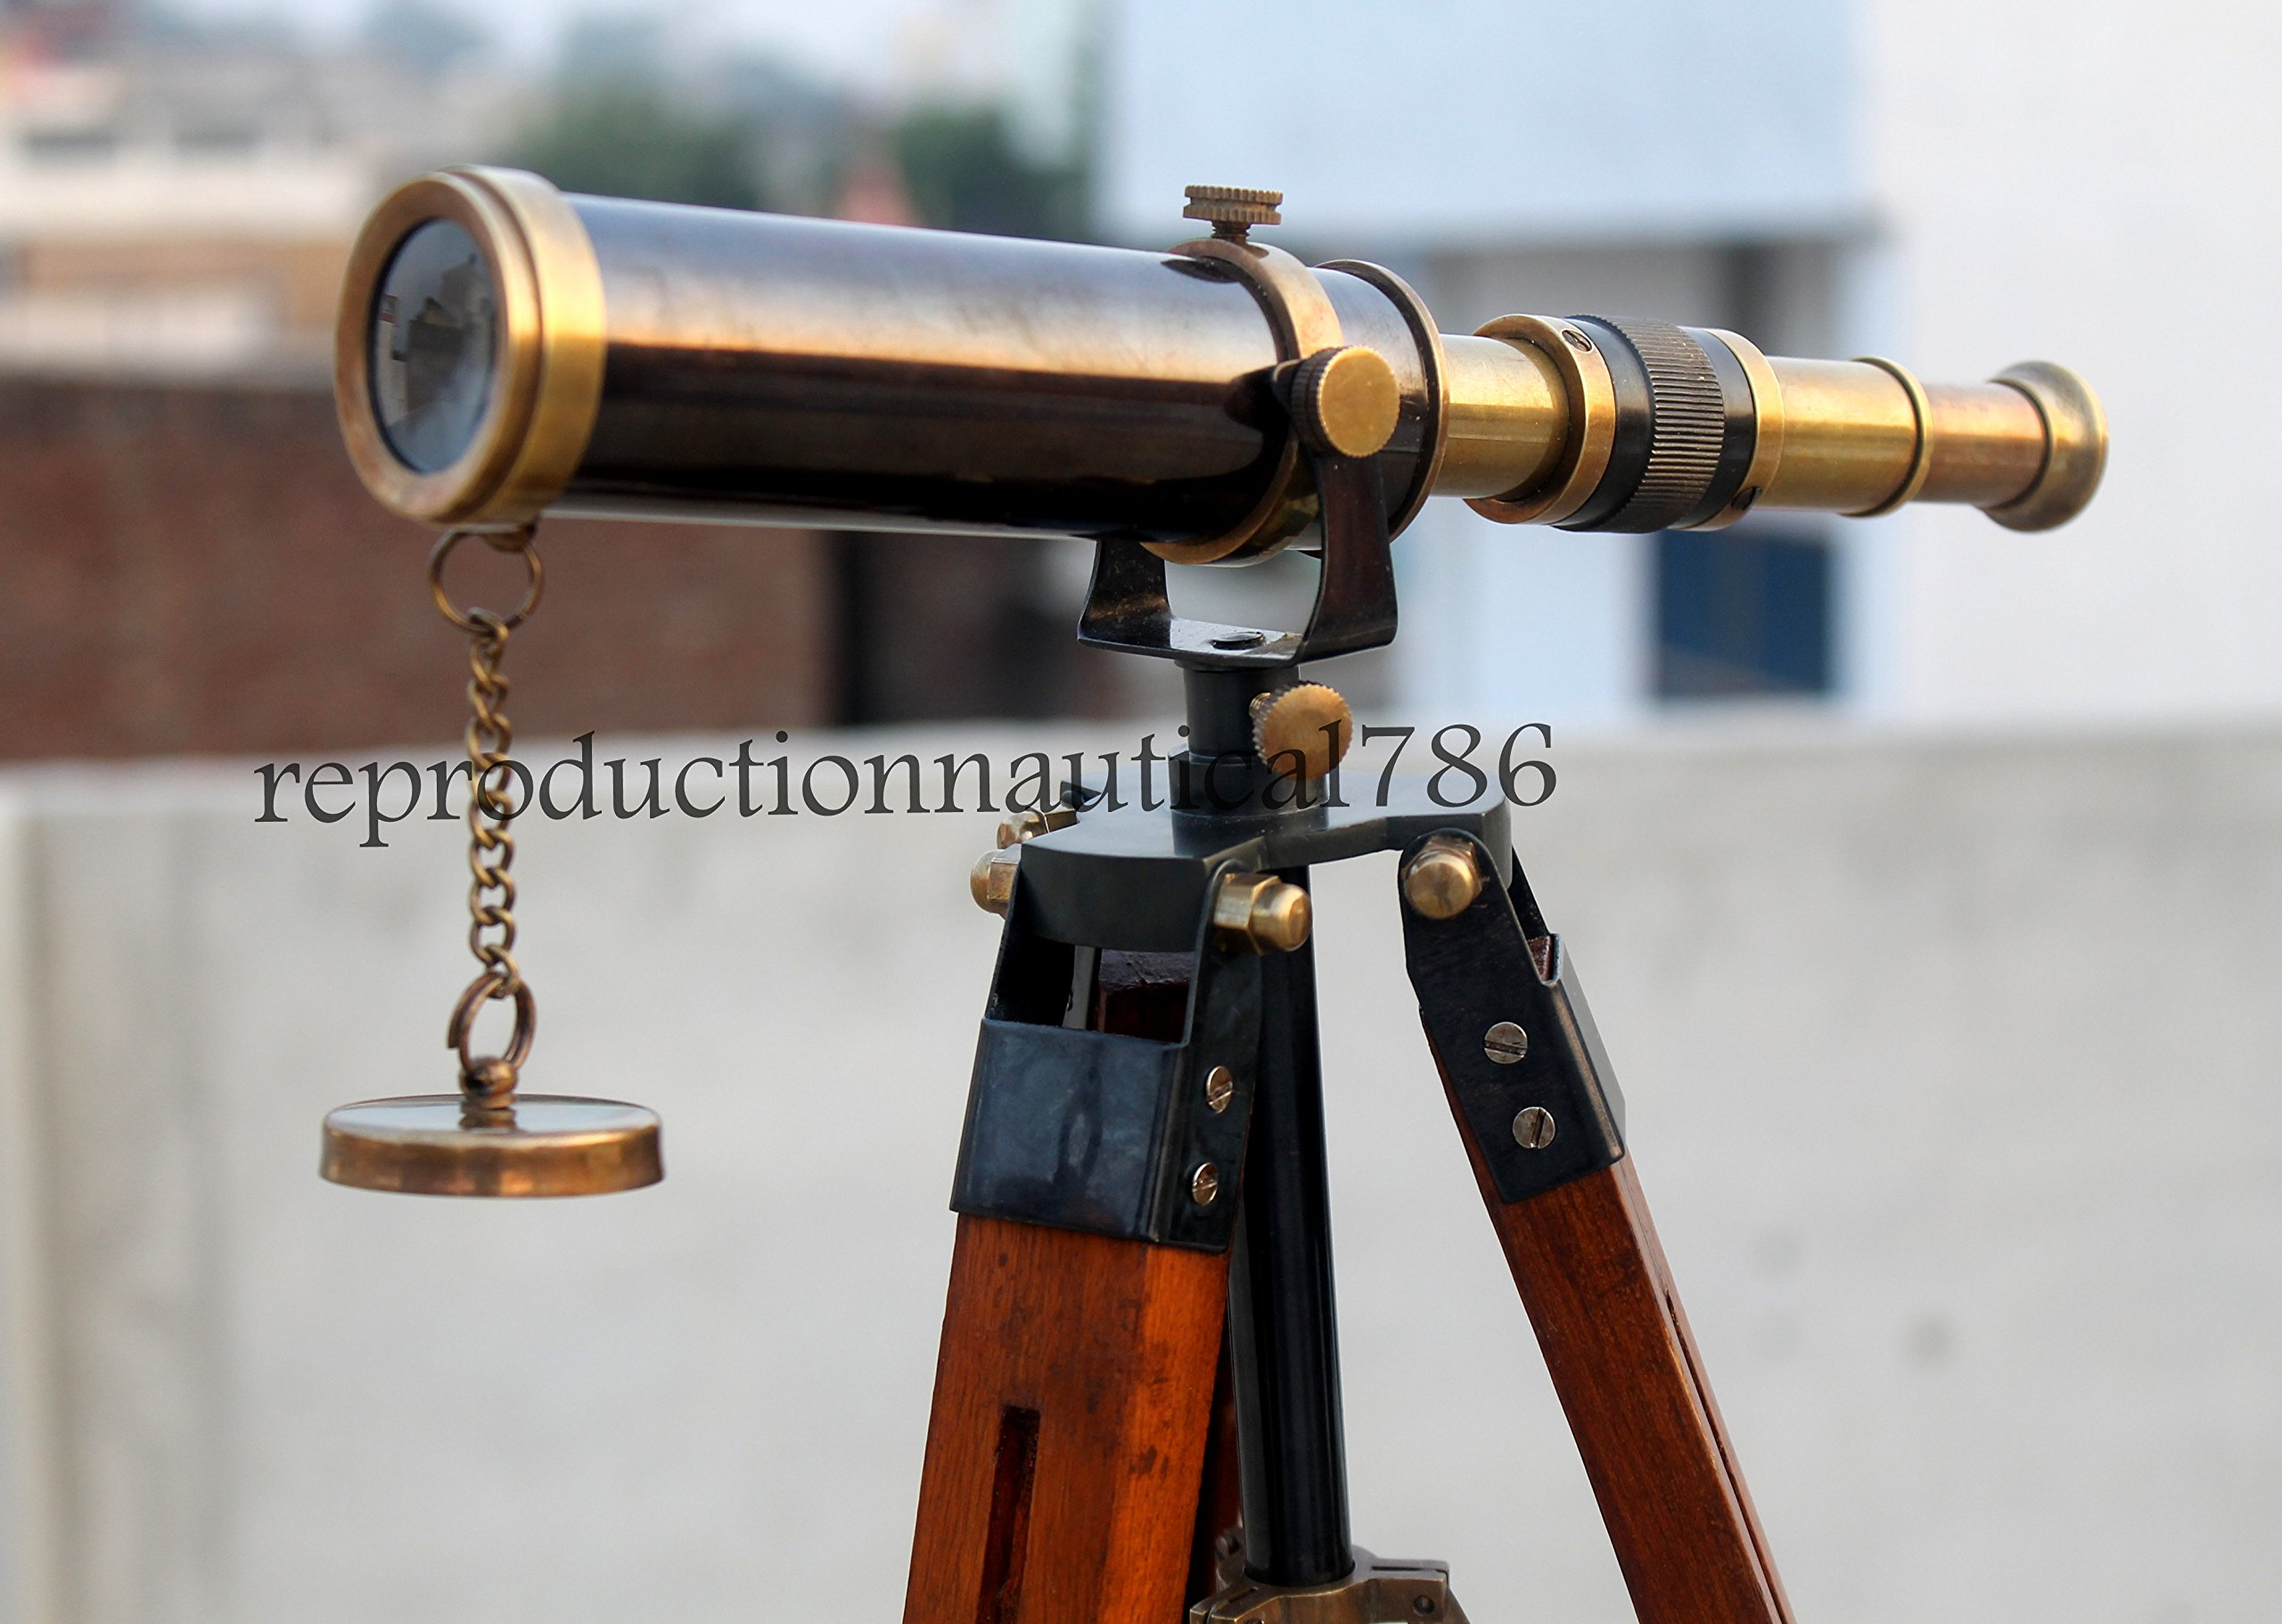 Nautical Two Tone Antique Brass Telescope Vintage Wooden Tripod Handmade Spy Glass Working Telescope Navy Ship Marine Scope Collectible Balcony Desk Tabletop Office Decorative